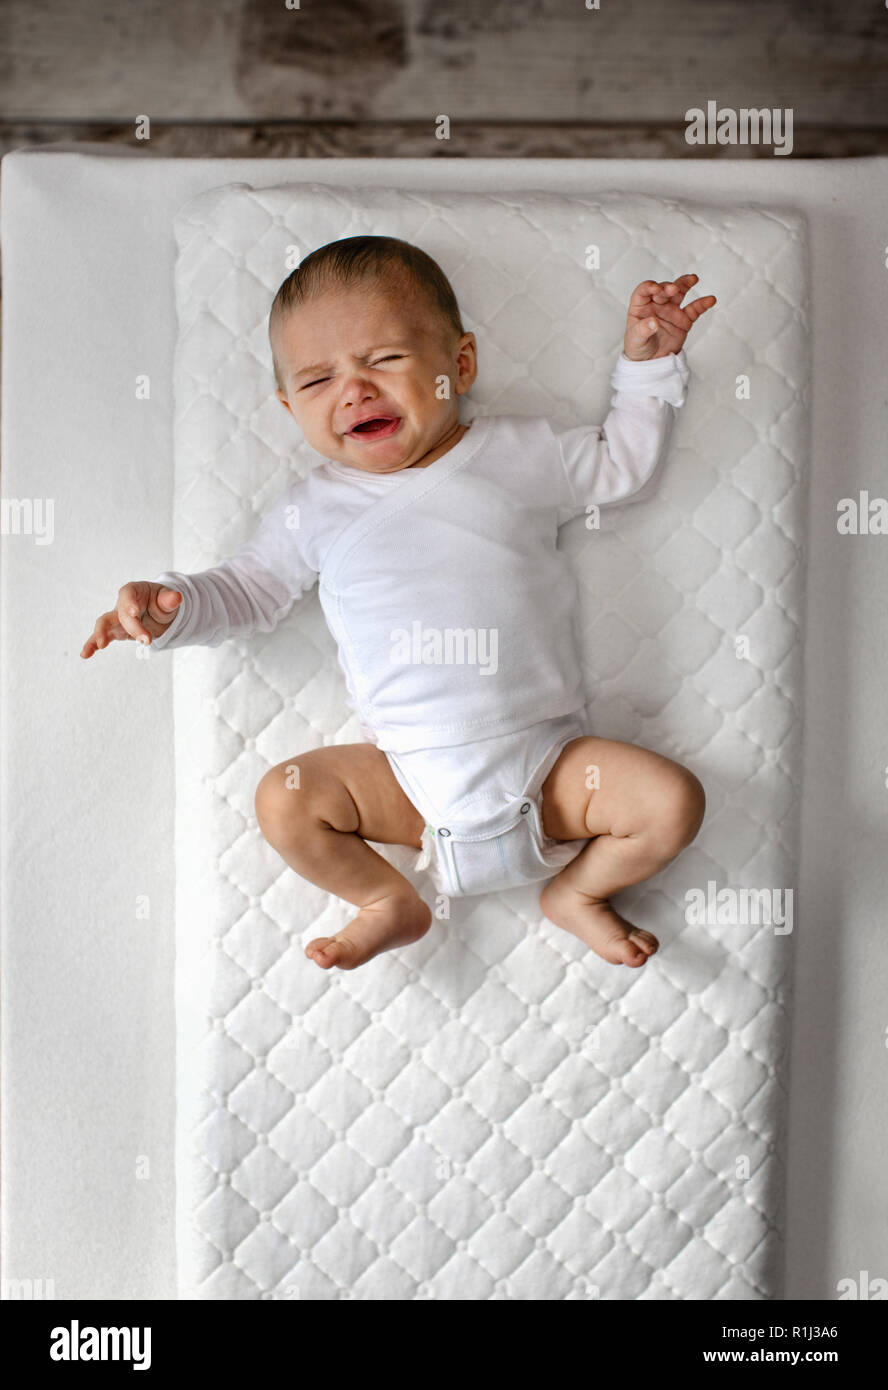 Crying baby lying on changing table. - Stock Image